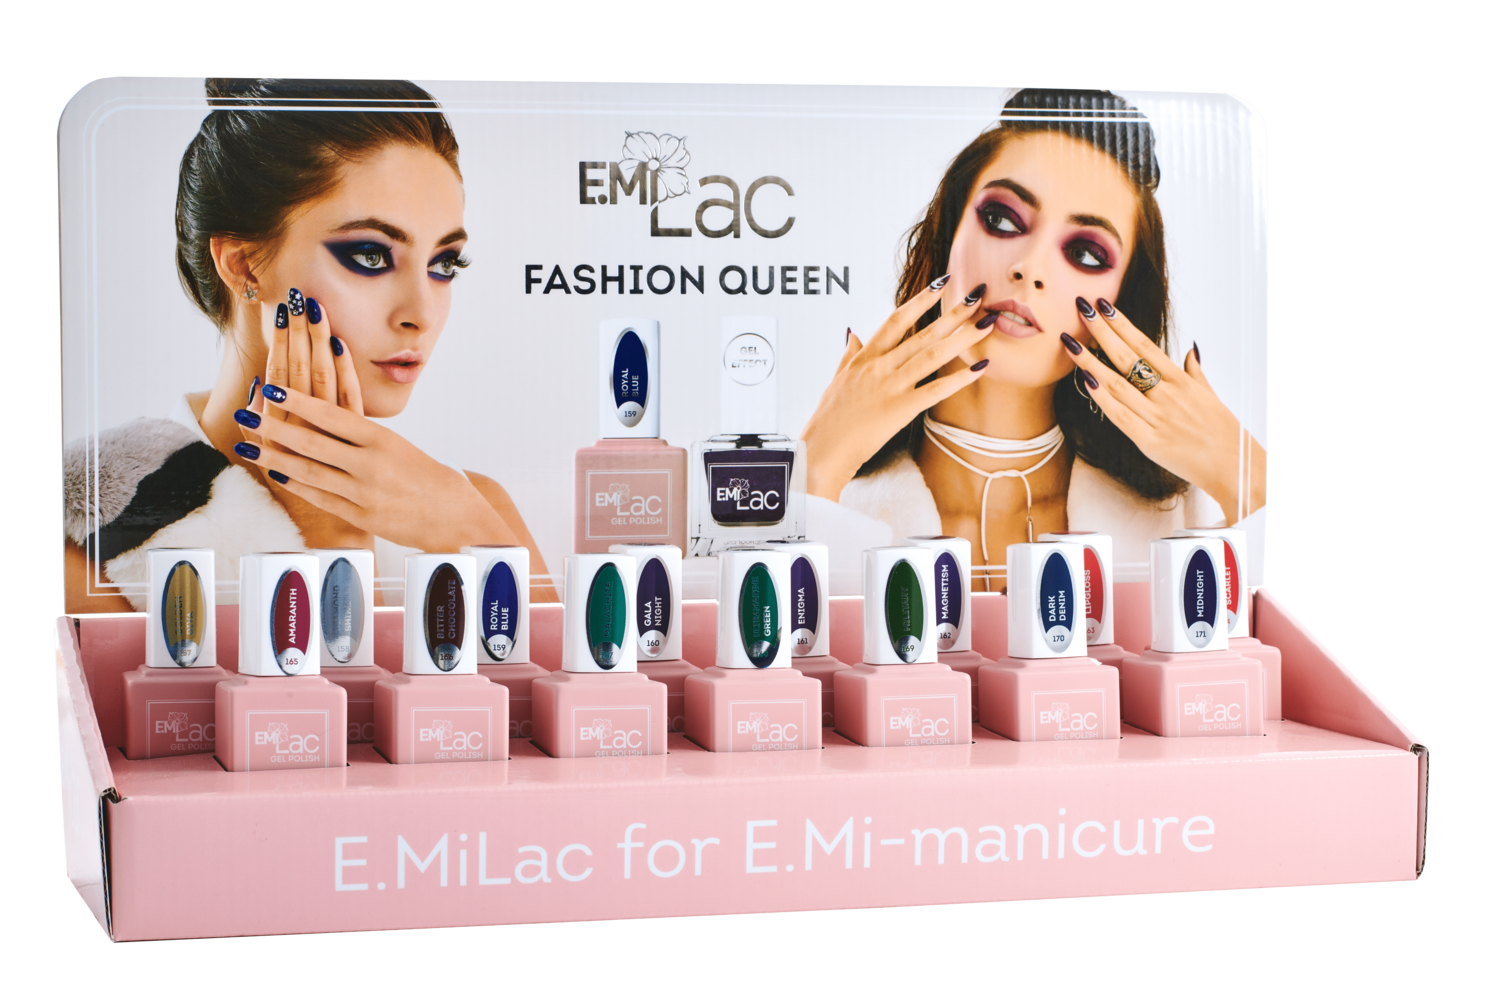 Display Ultra Strong and E.MiLac Fashion Queen+Set